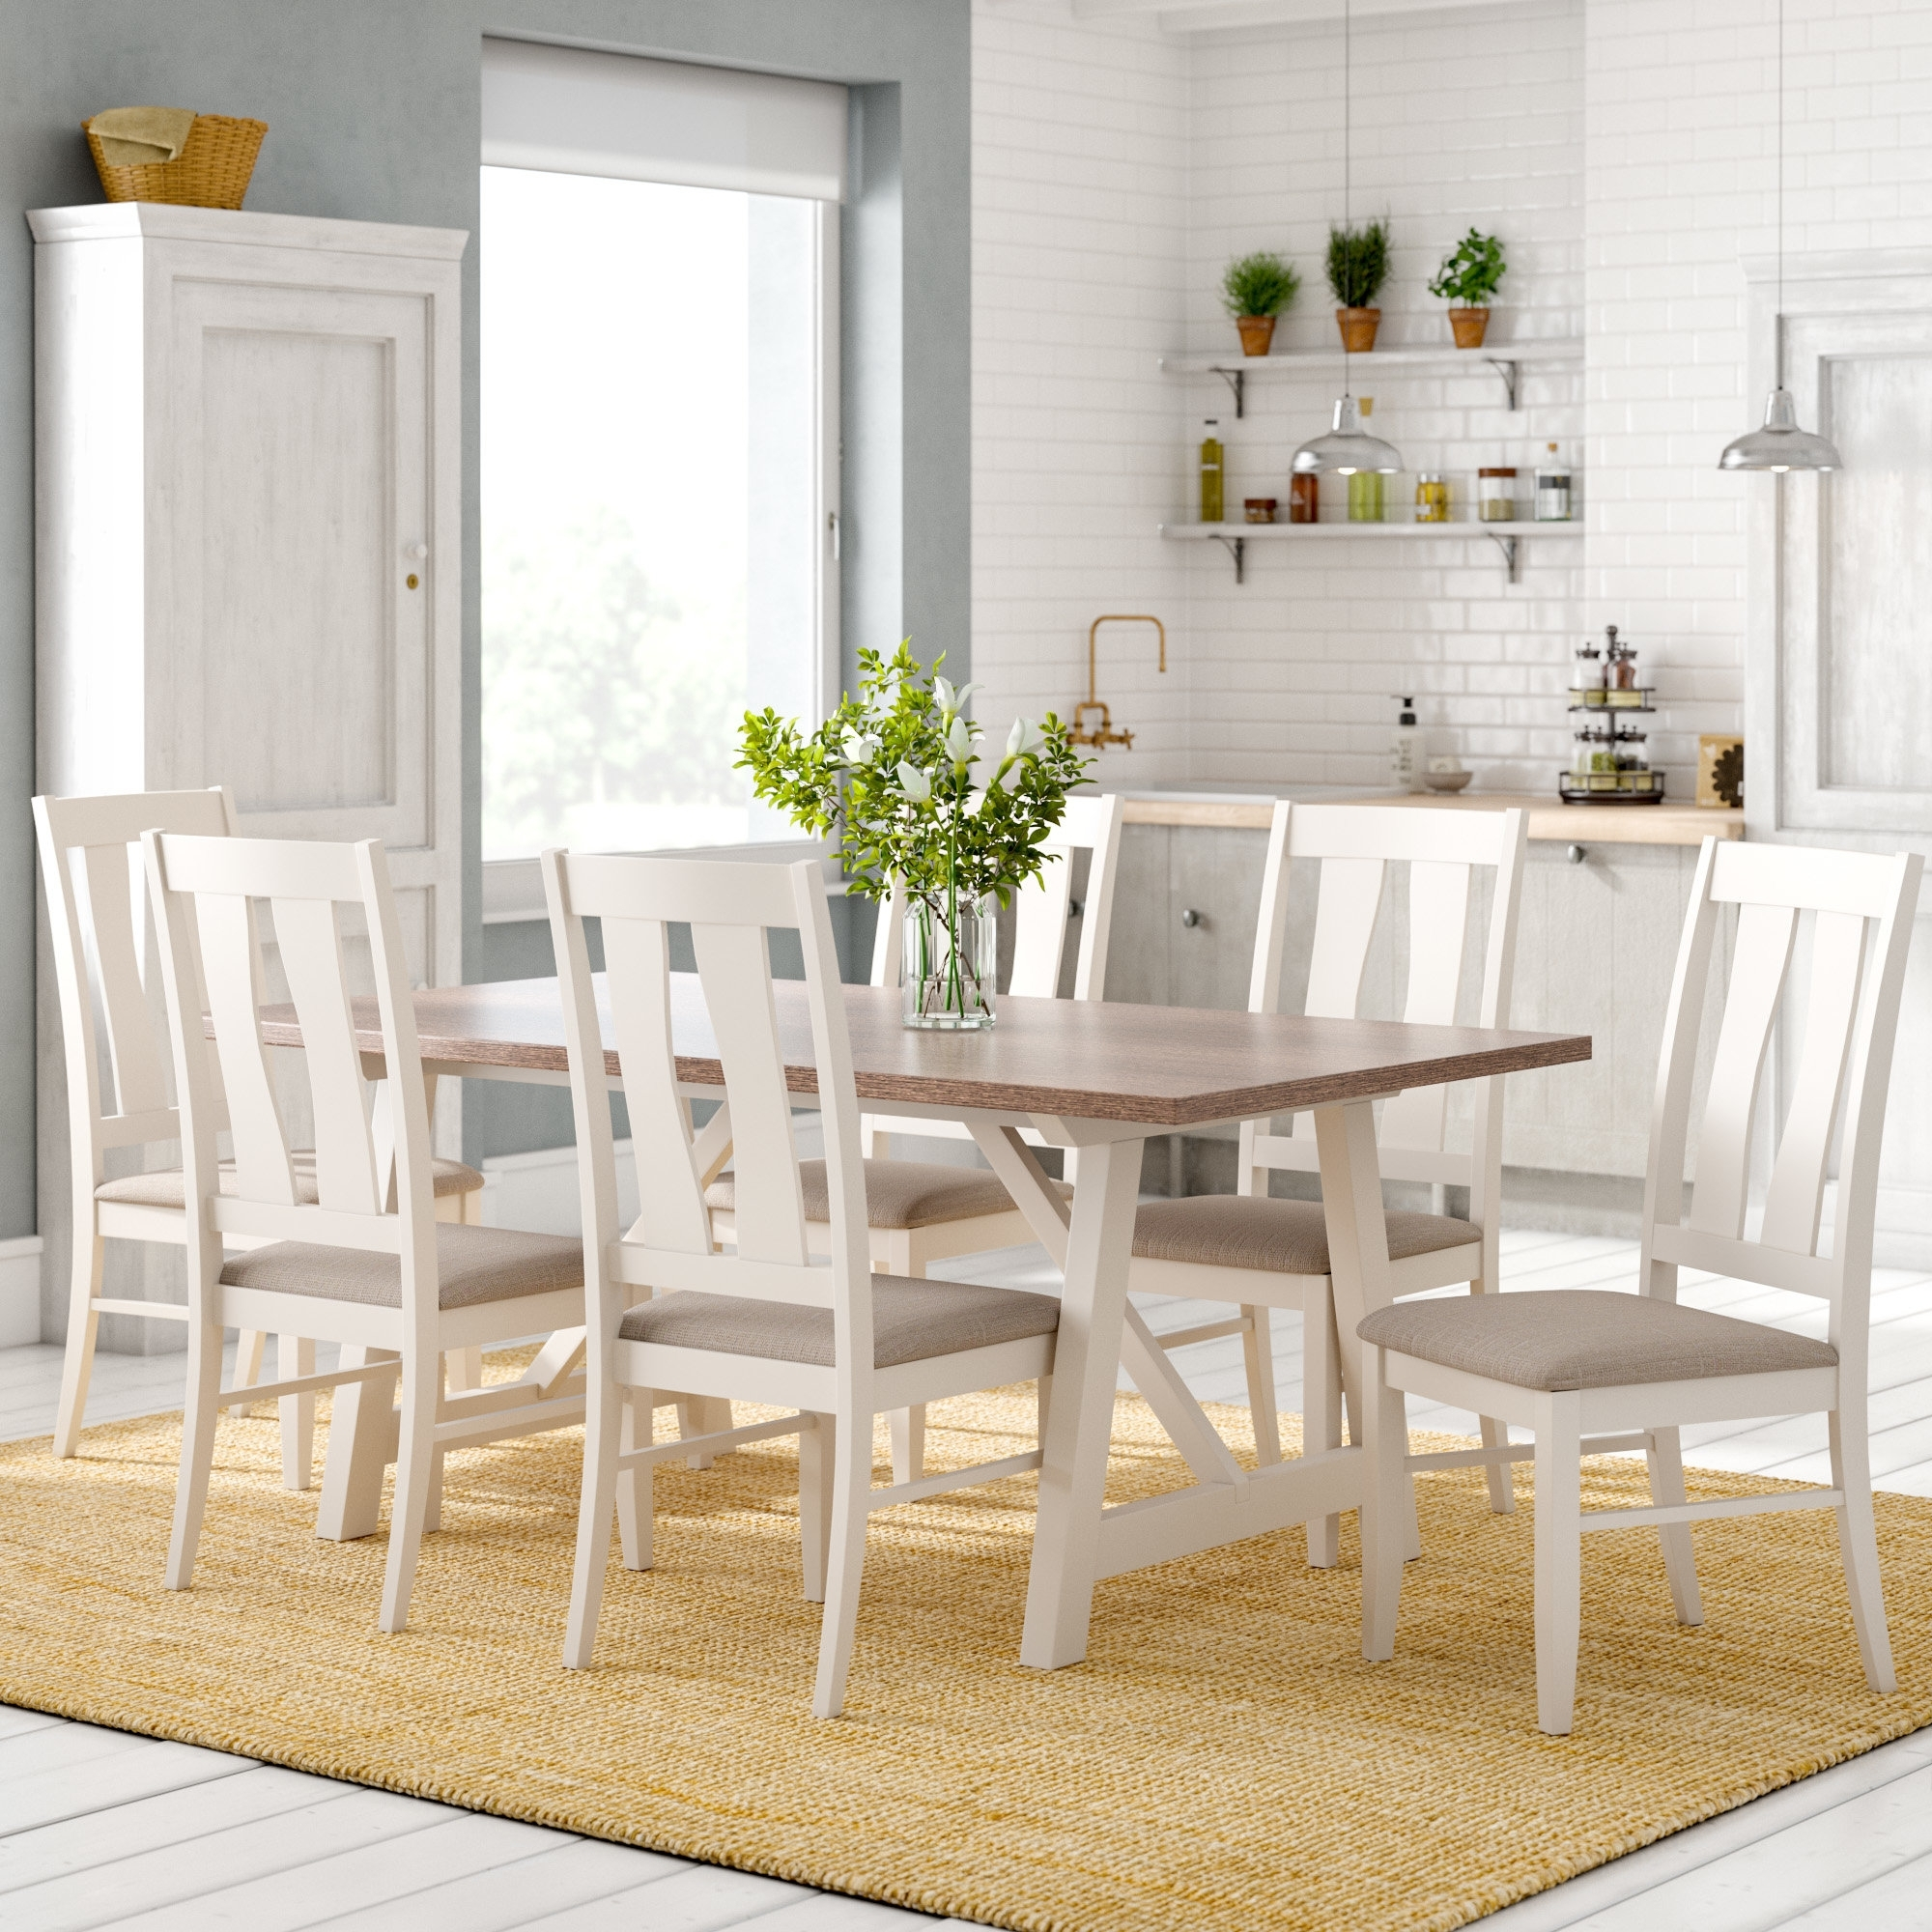 Most Popular Laurel Foundry Lombardy Dining Table And 6 Chairs & Reviews Inside Wood Dining Tables And 6 Chairs (View 8 of 25)